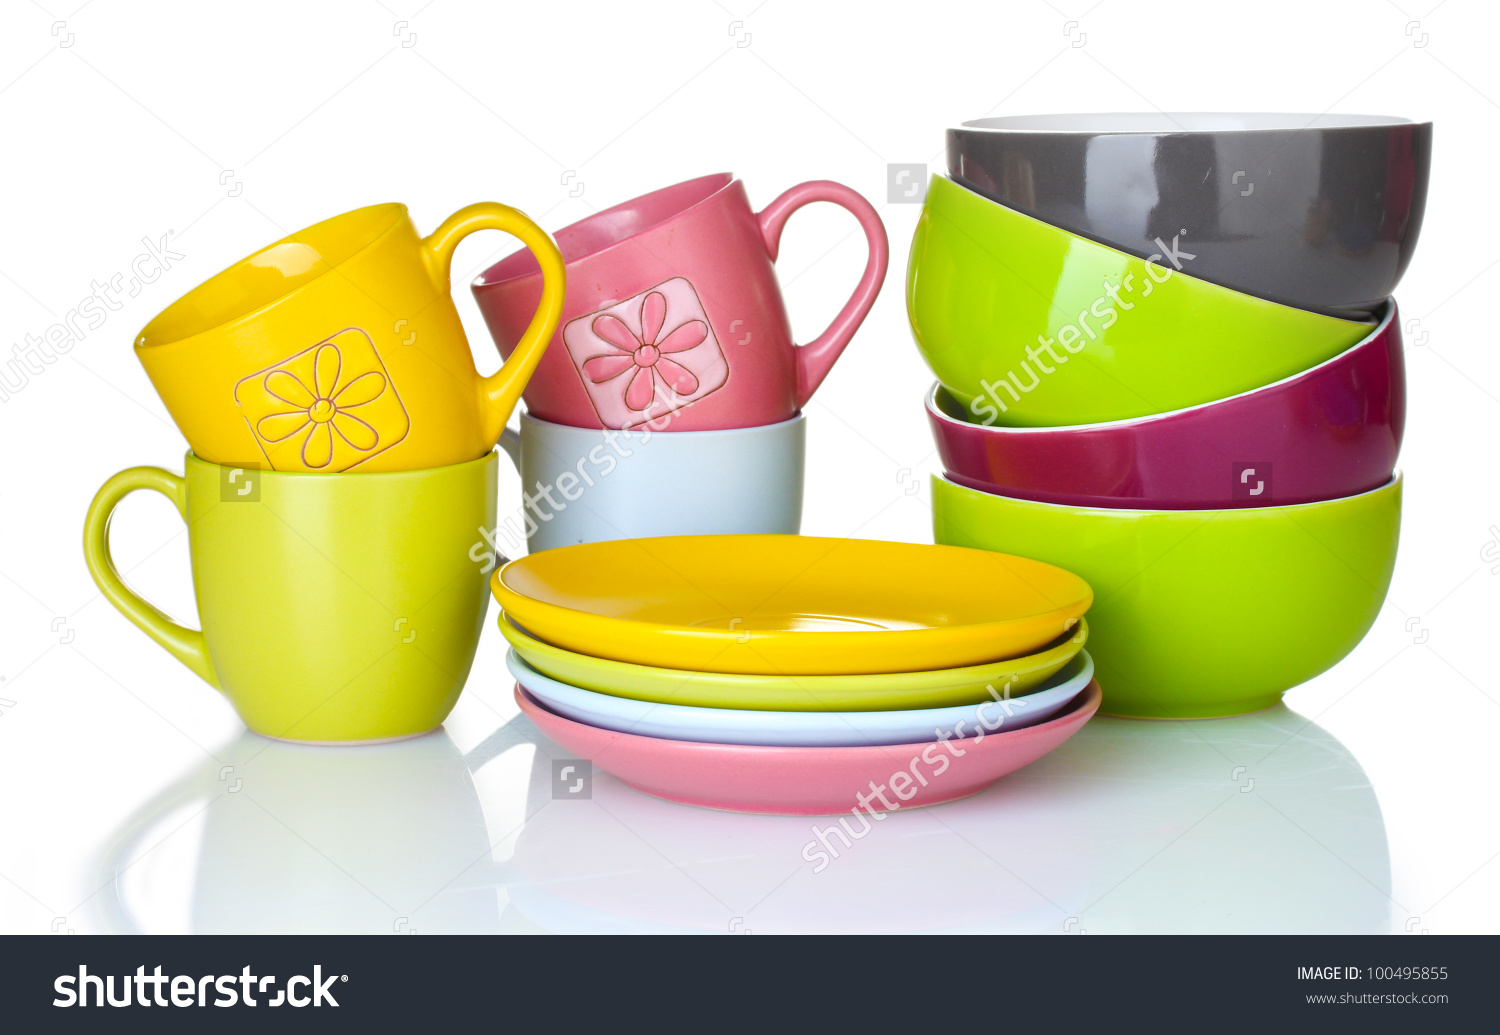 Bright Empty Bowls Cups Plates Isolated Stock Photo 100495855.